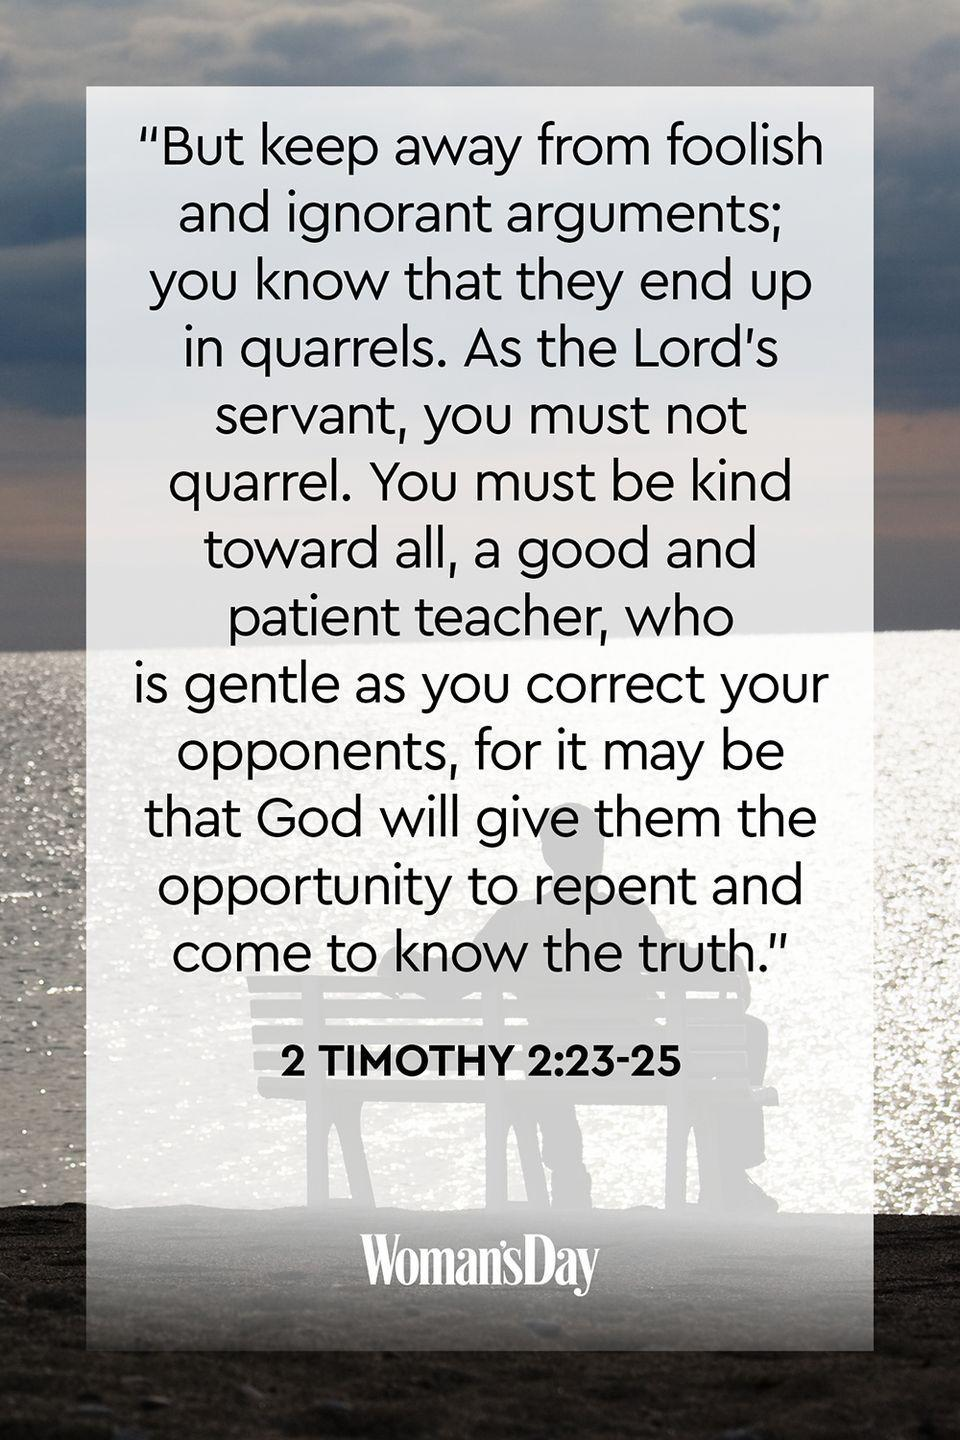 """<p>""""But keep away from foolish and ignorant arguments; you know that they end up in quarrels. As the Lord's servant, you must not quarrel. You must be kind toward all, a good and patient teacher, who is gentle as you correct your opponents, for it may be that God will give them the opportunity to repent and come to know the truth.""""</p><p><strong>The Good News:</strong> When we surround ourselves with other people, we can pick up some of their mannerisms, including their negative reactions to situations. Stay away from those people who pick a fight over everything because it goes against God's wishes. </p>"""